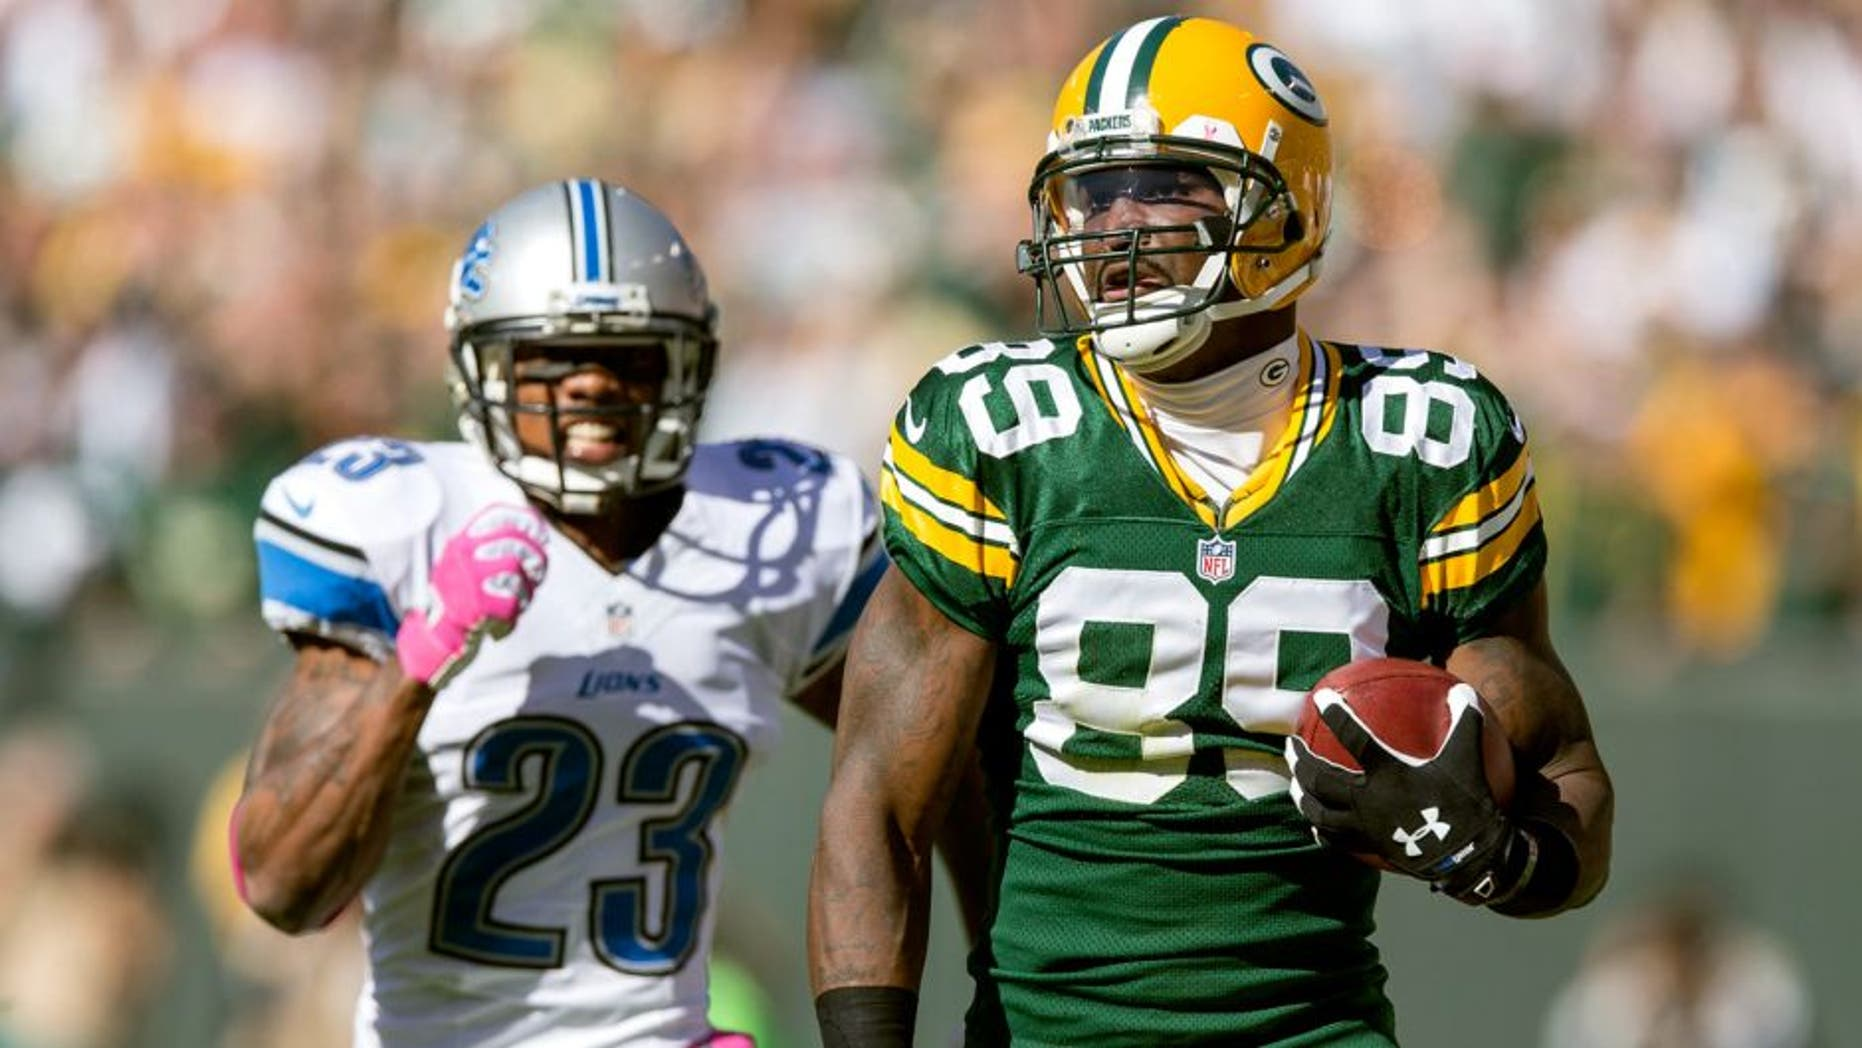 GREEN BAY, WI - OCTOBER 6: James Jones #89 of the Green Bay Packers runs during a 83 yard touchdown catch against the Chris Houston #23 of the Detroit Lions at Lambeau Field on October 6, 2013 in Green Bay, Wisconsin. The Packers defeated the Lions 22-9. (Photo Tom Lynn /Getty Images)